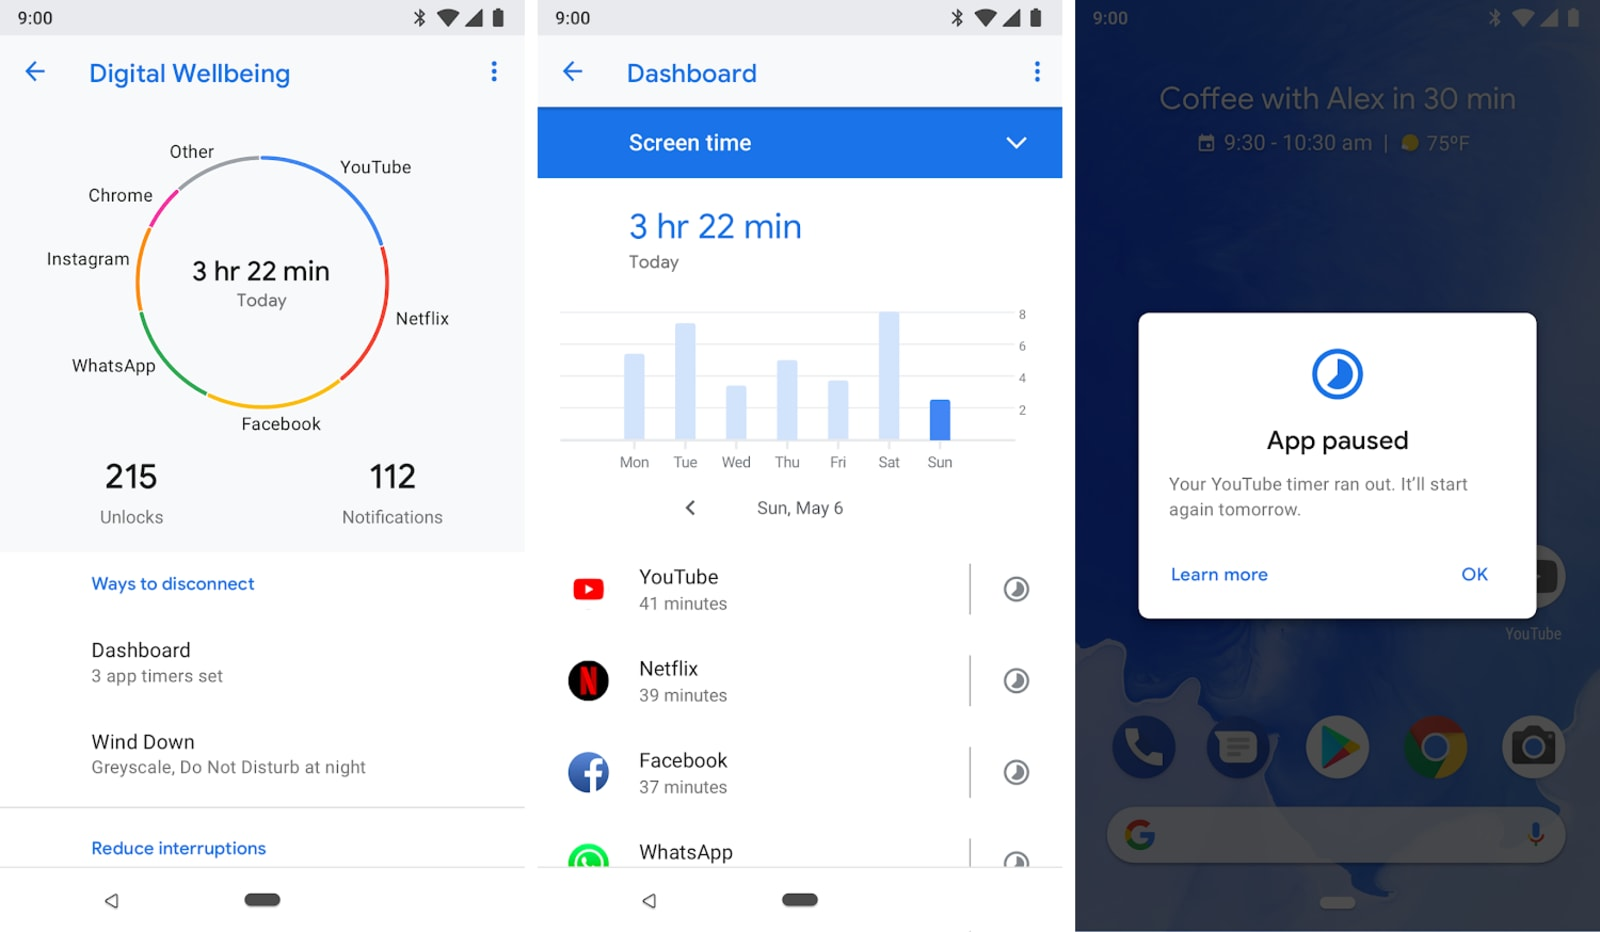 Digital Wellbeing in Android